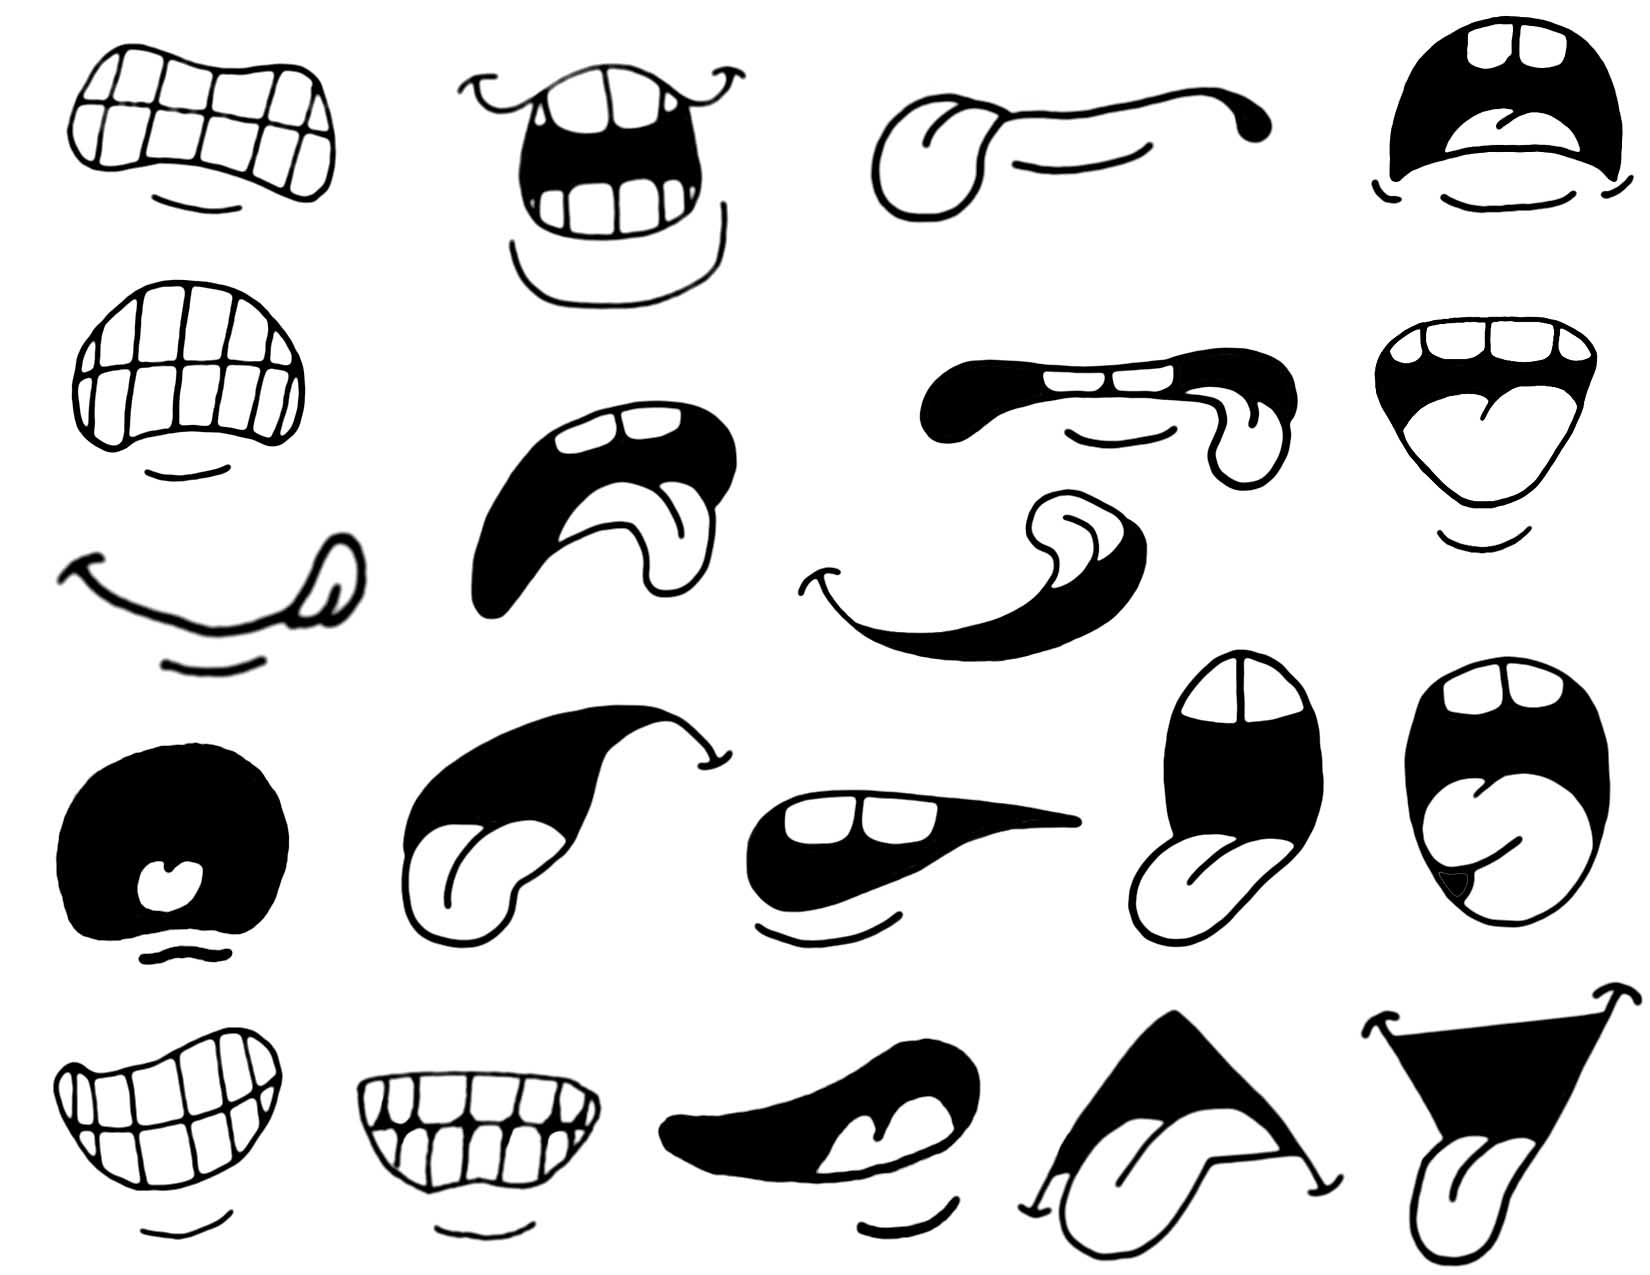 Secondary 20cartoon 20mix 20and 20match 20mouths on scary cartoon expressions